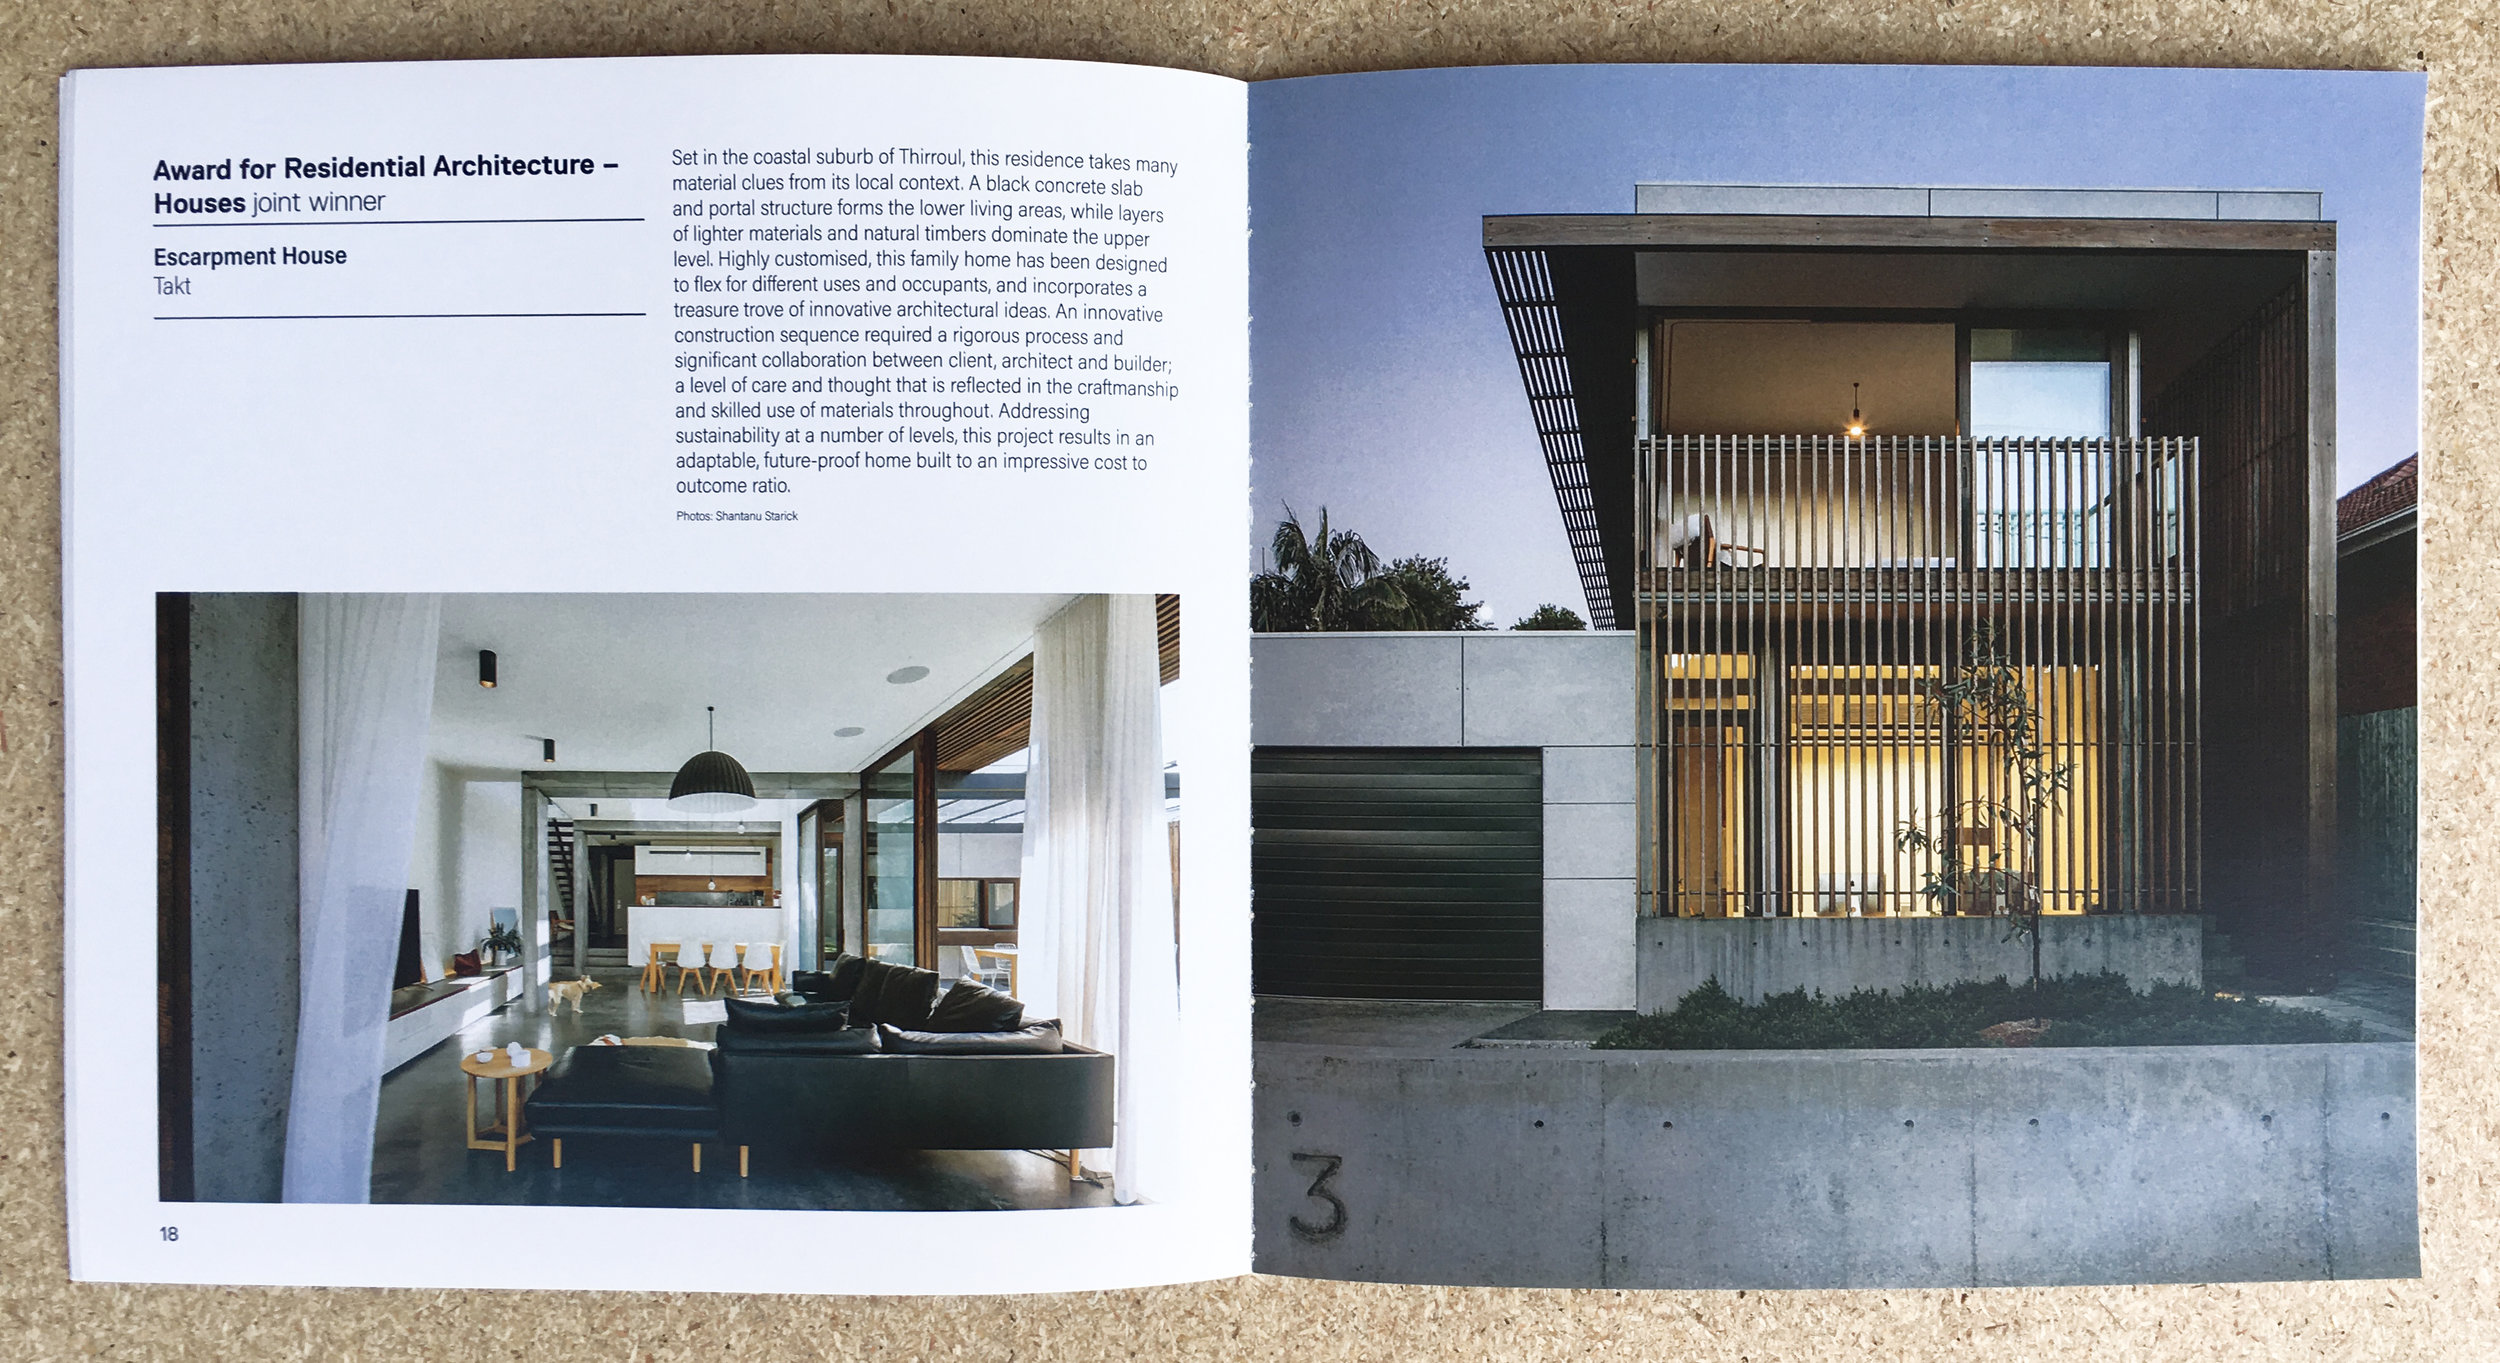 AIS NSW Country Division Award - Residential Architecture - Escarpment House